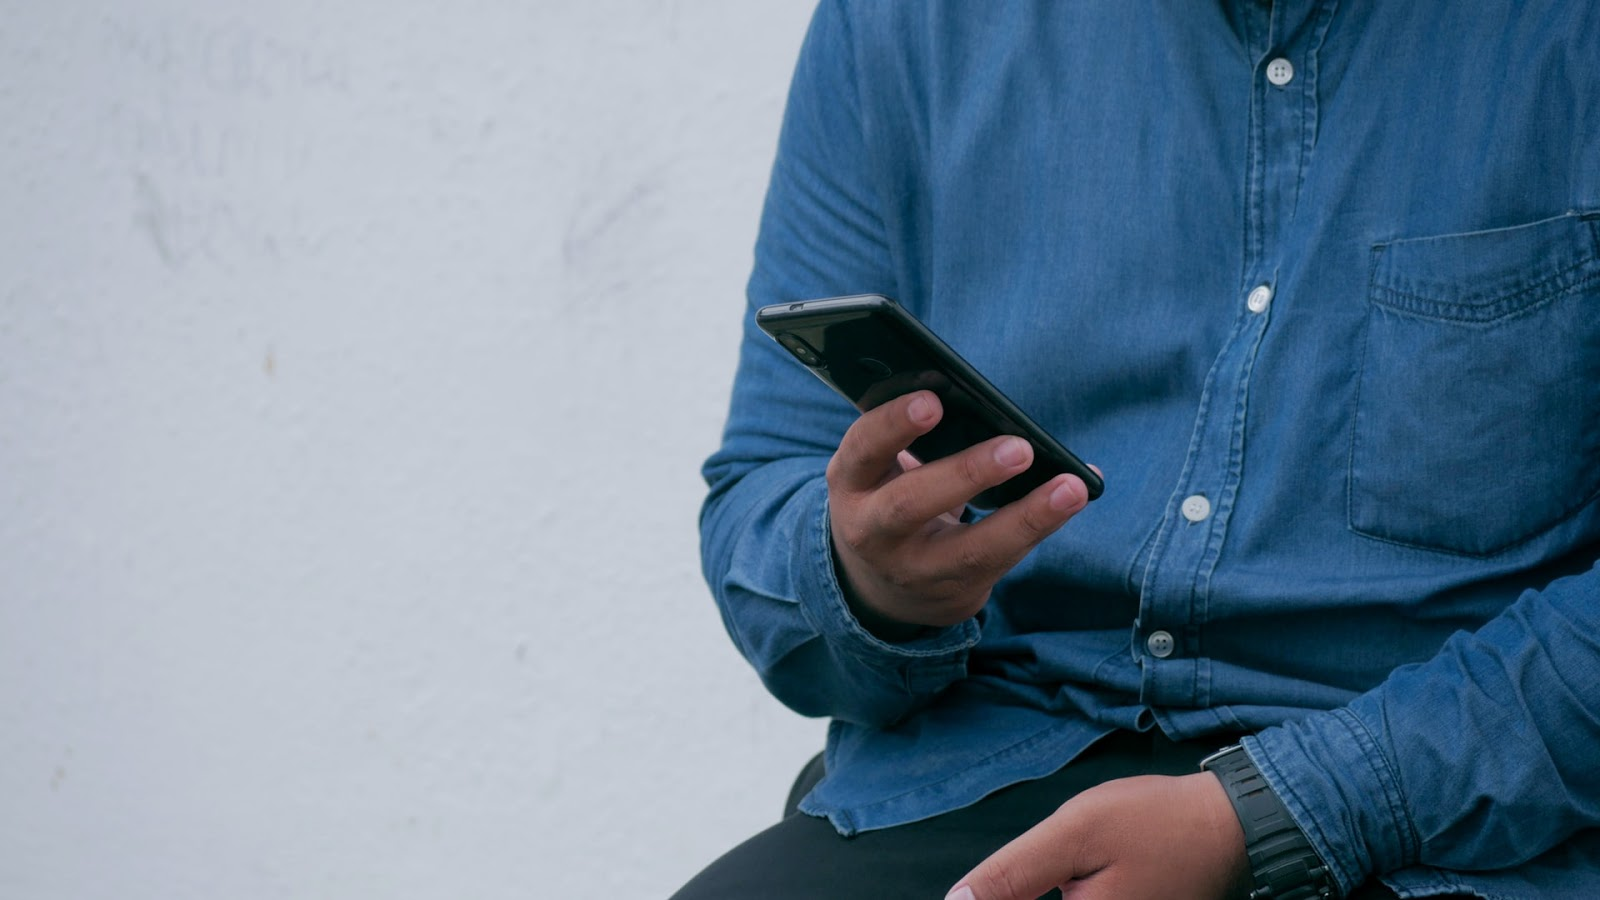 man in blue shirt reading text on cell phone